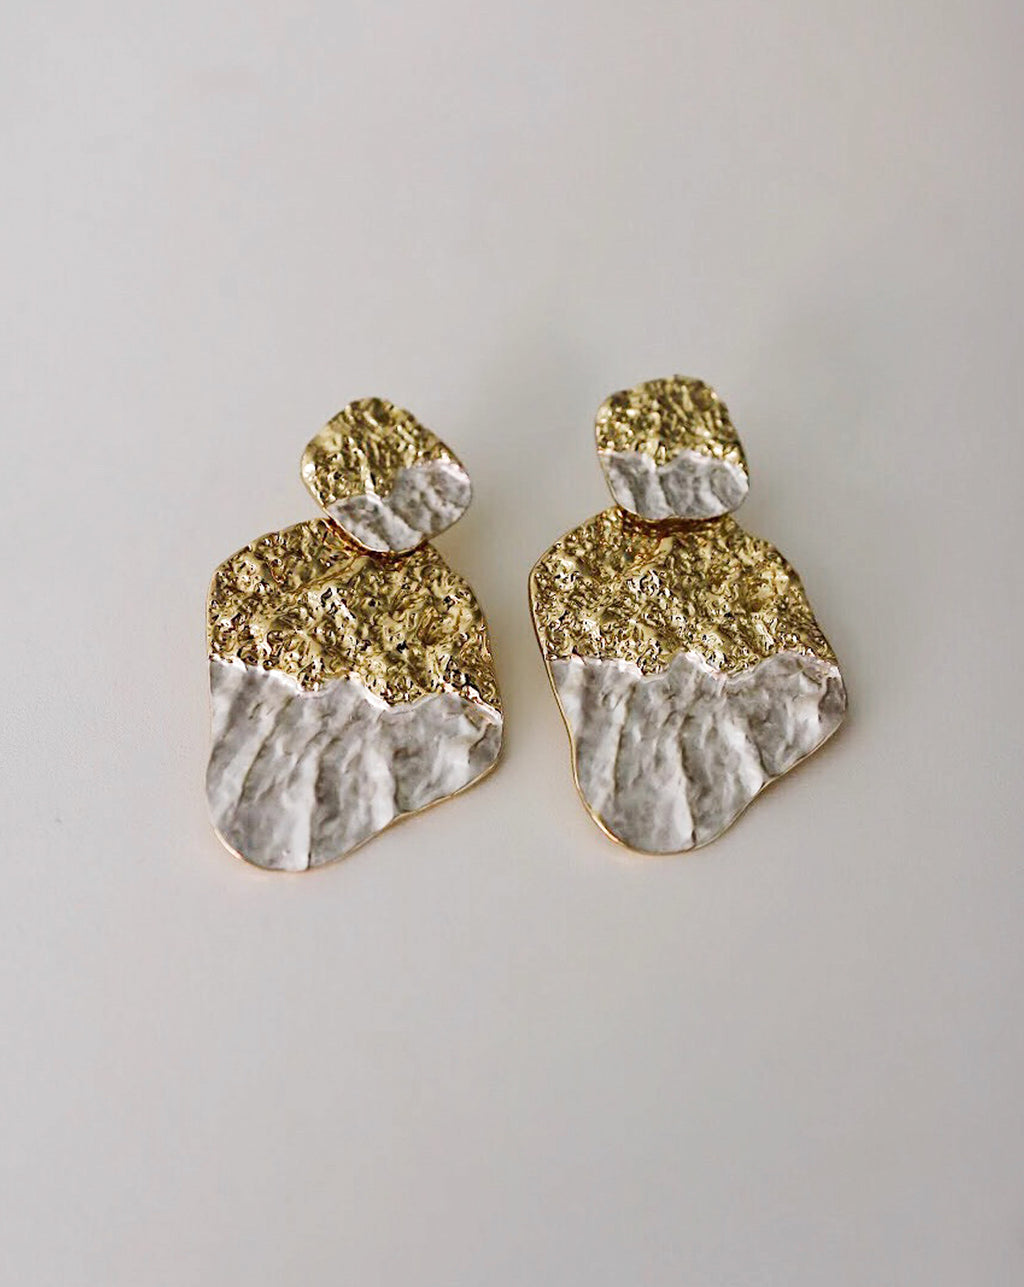 MIDAS Oblong Earrings - The Hexad